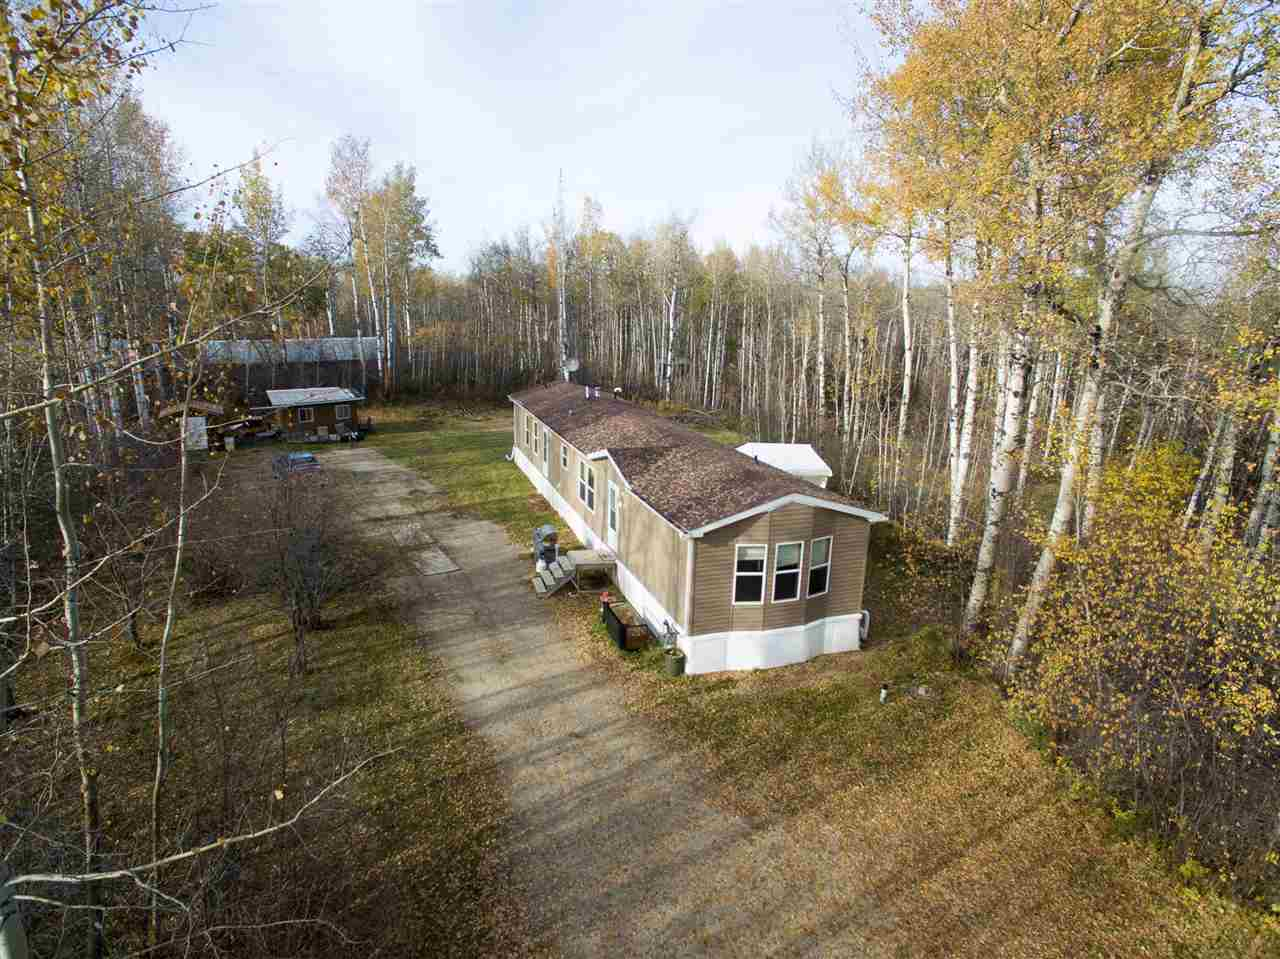 Photo 1: 200 54304 RRG 12: Rural Lac Ste. Anne County Manufactured Home for sale : MLS(r) # E4058523